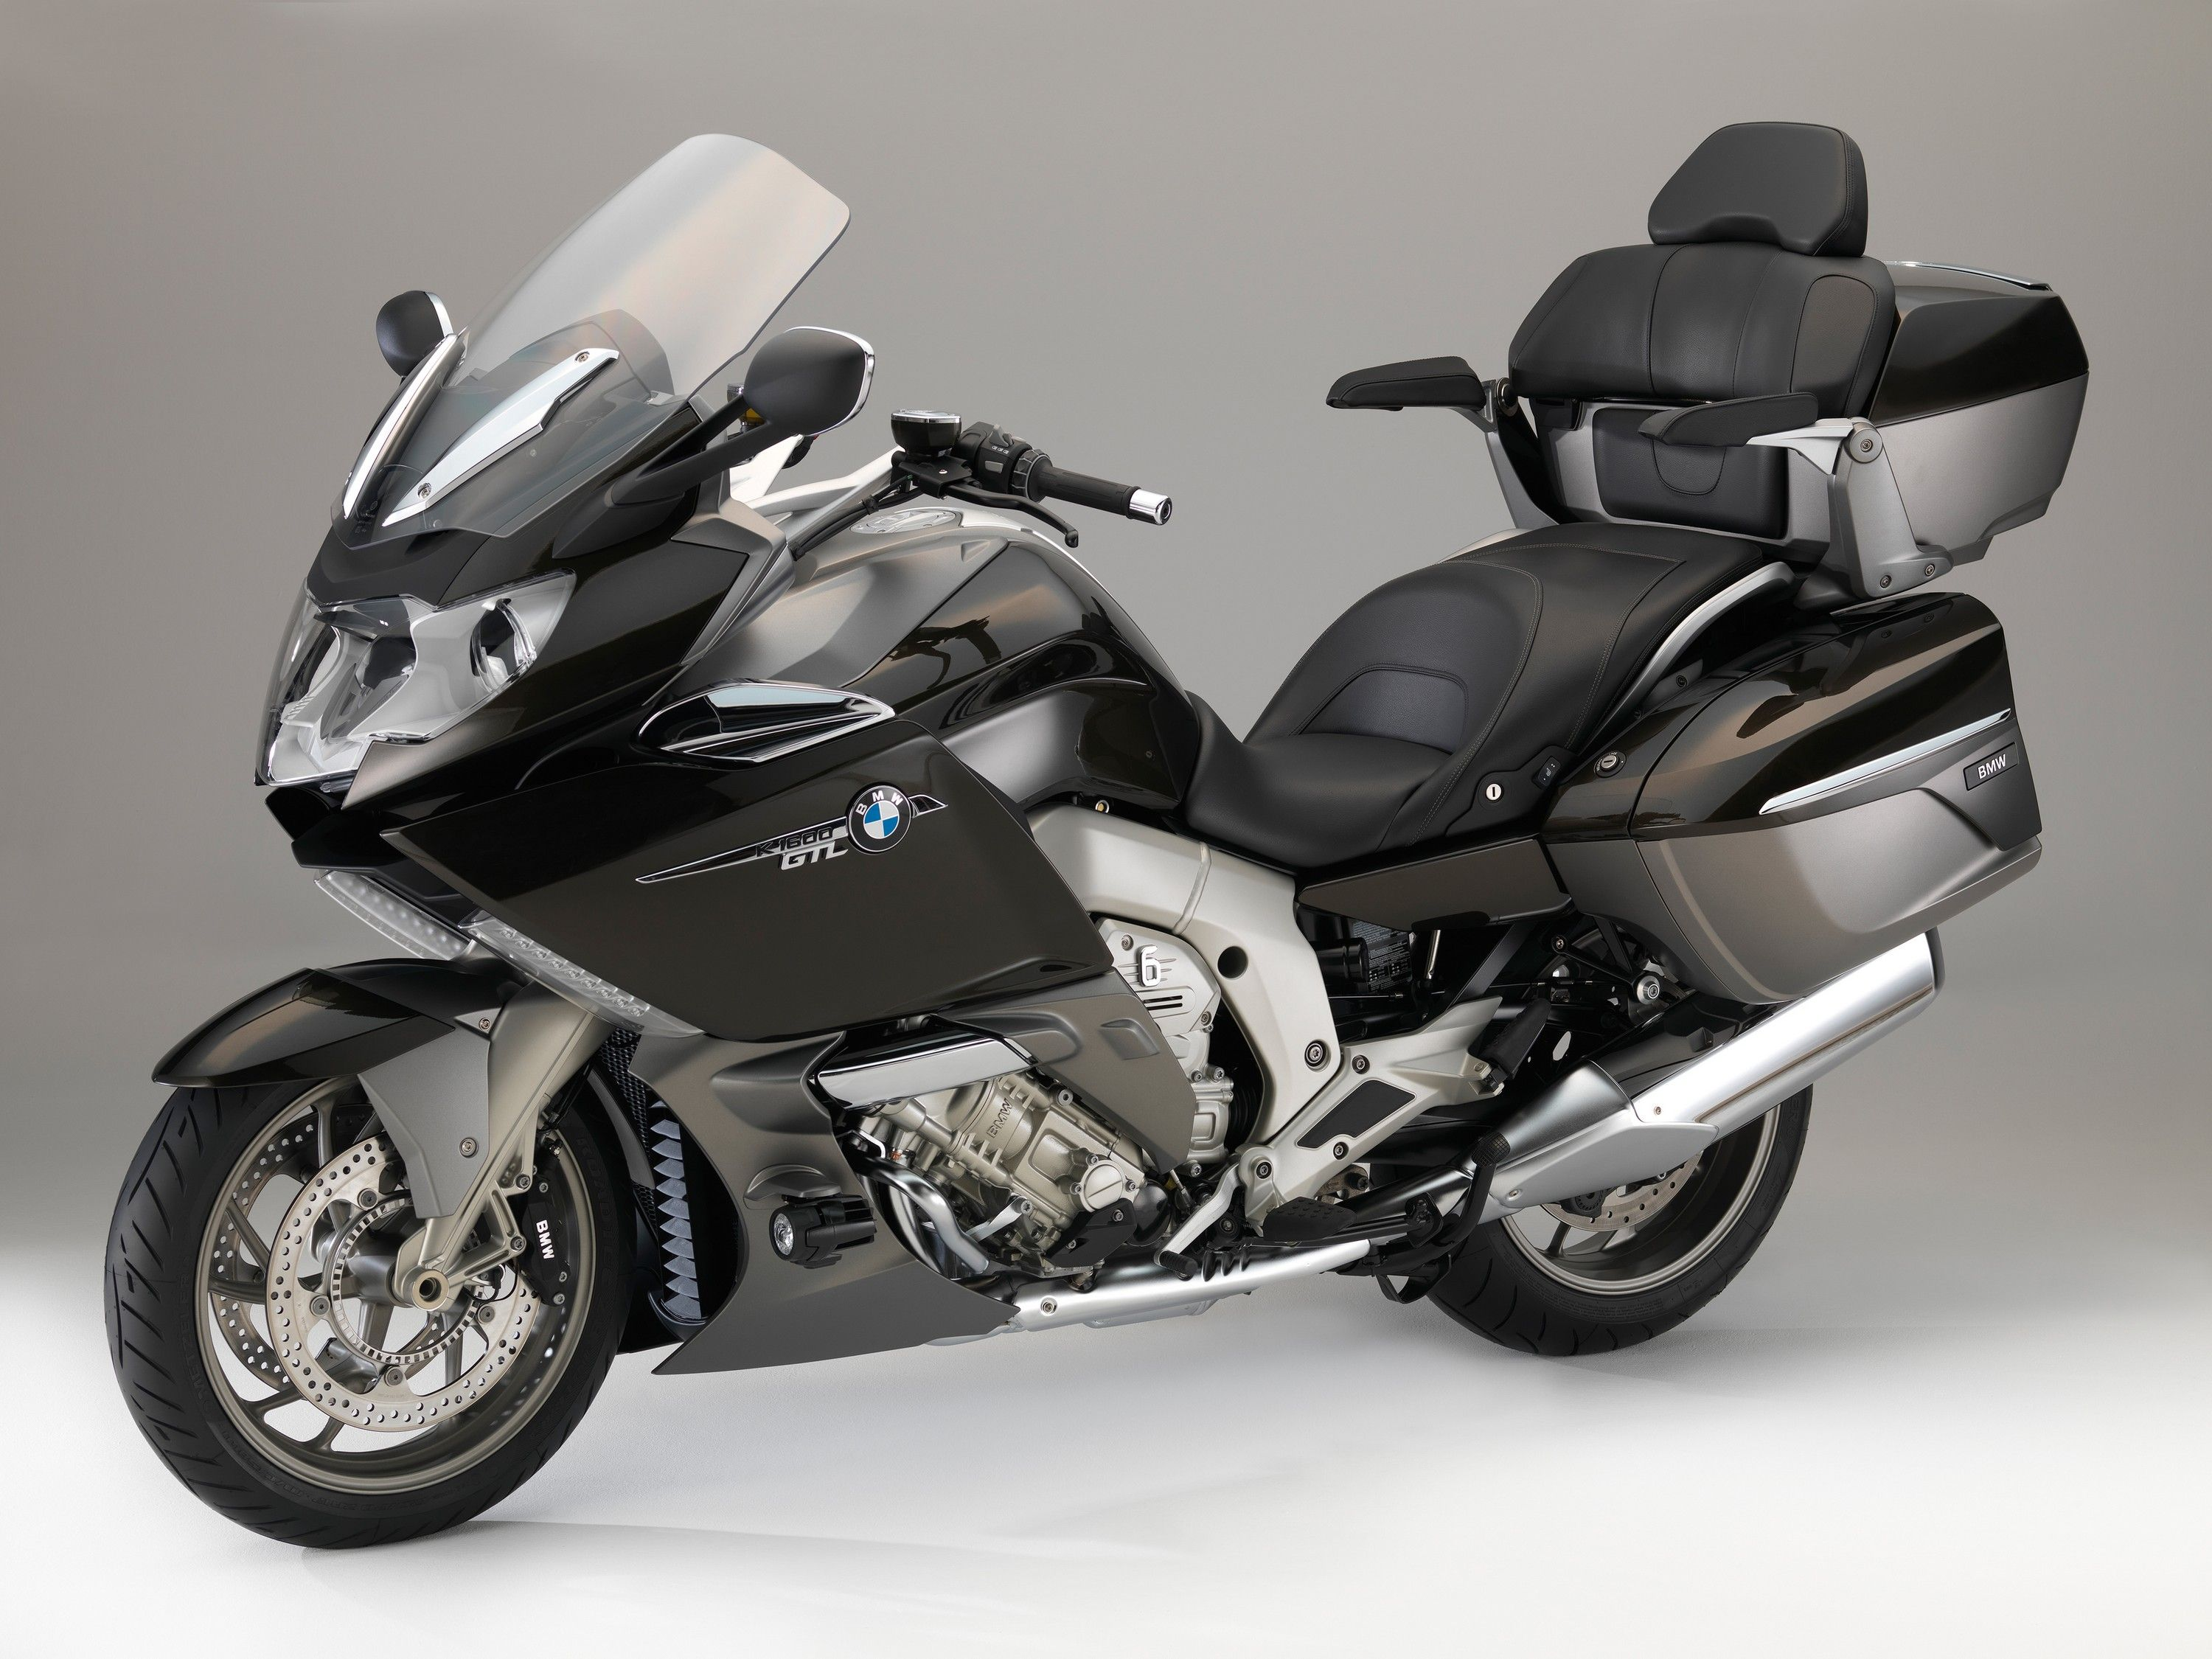 Bmw K 1600 Gtl Exclusive Sparkling Storm Metallic With Images